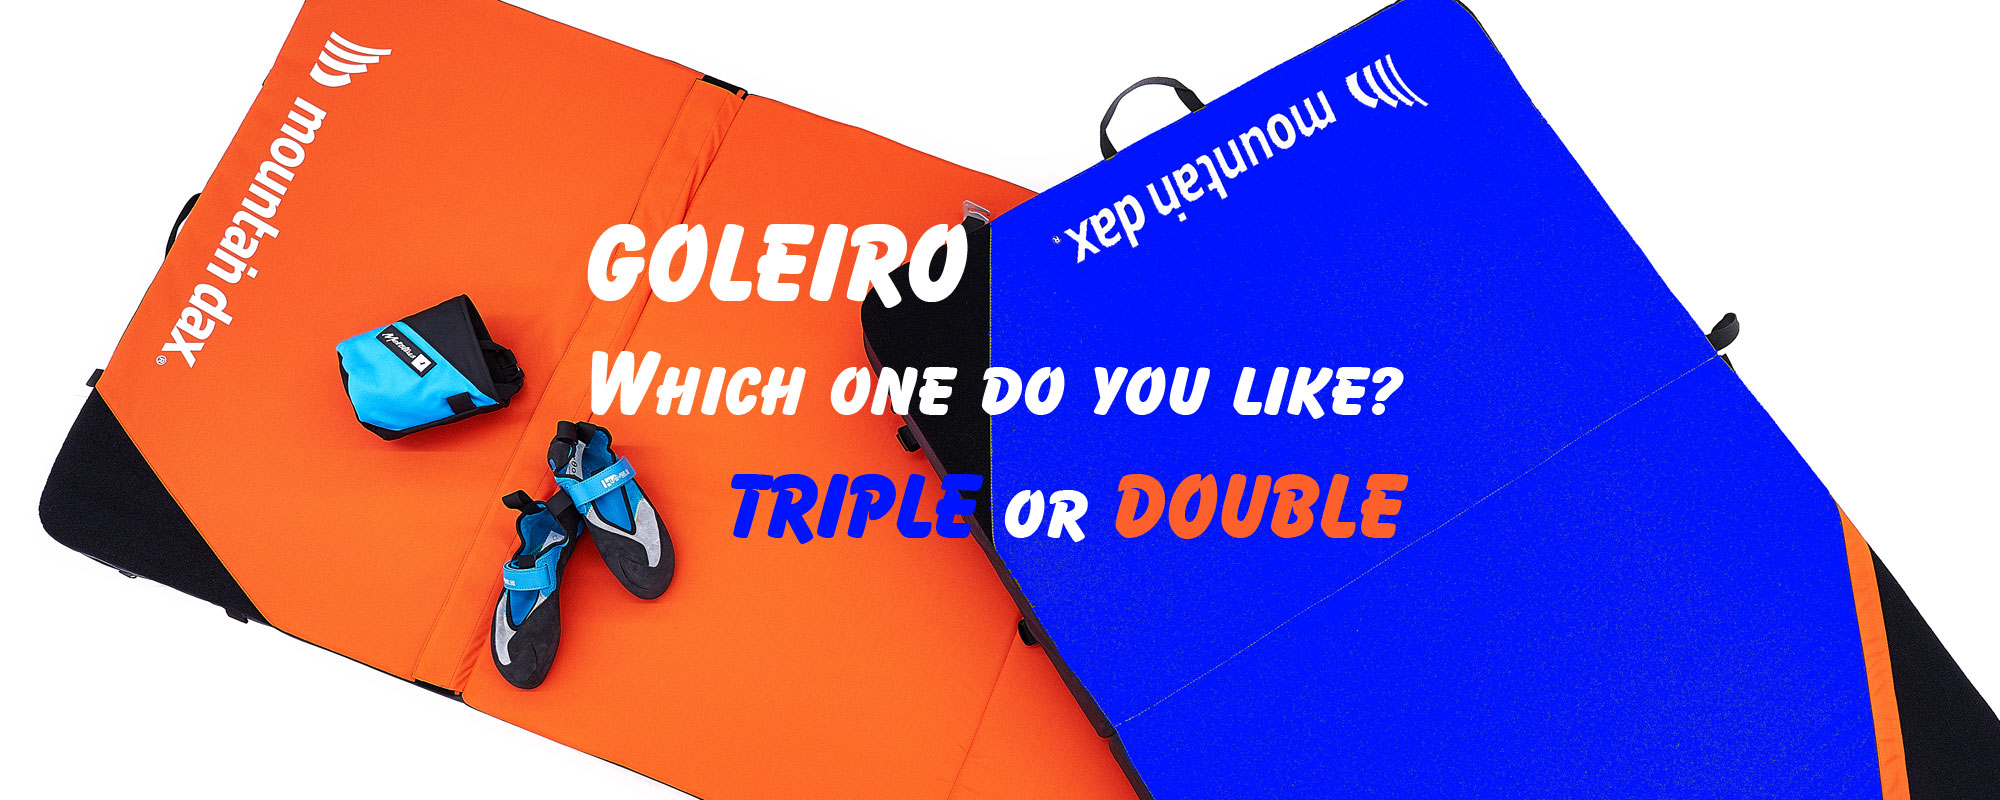 Which one do you like? Goleiro Double Goleiro Triple mountaindax